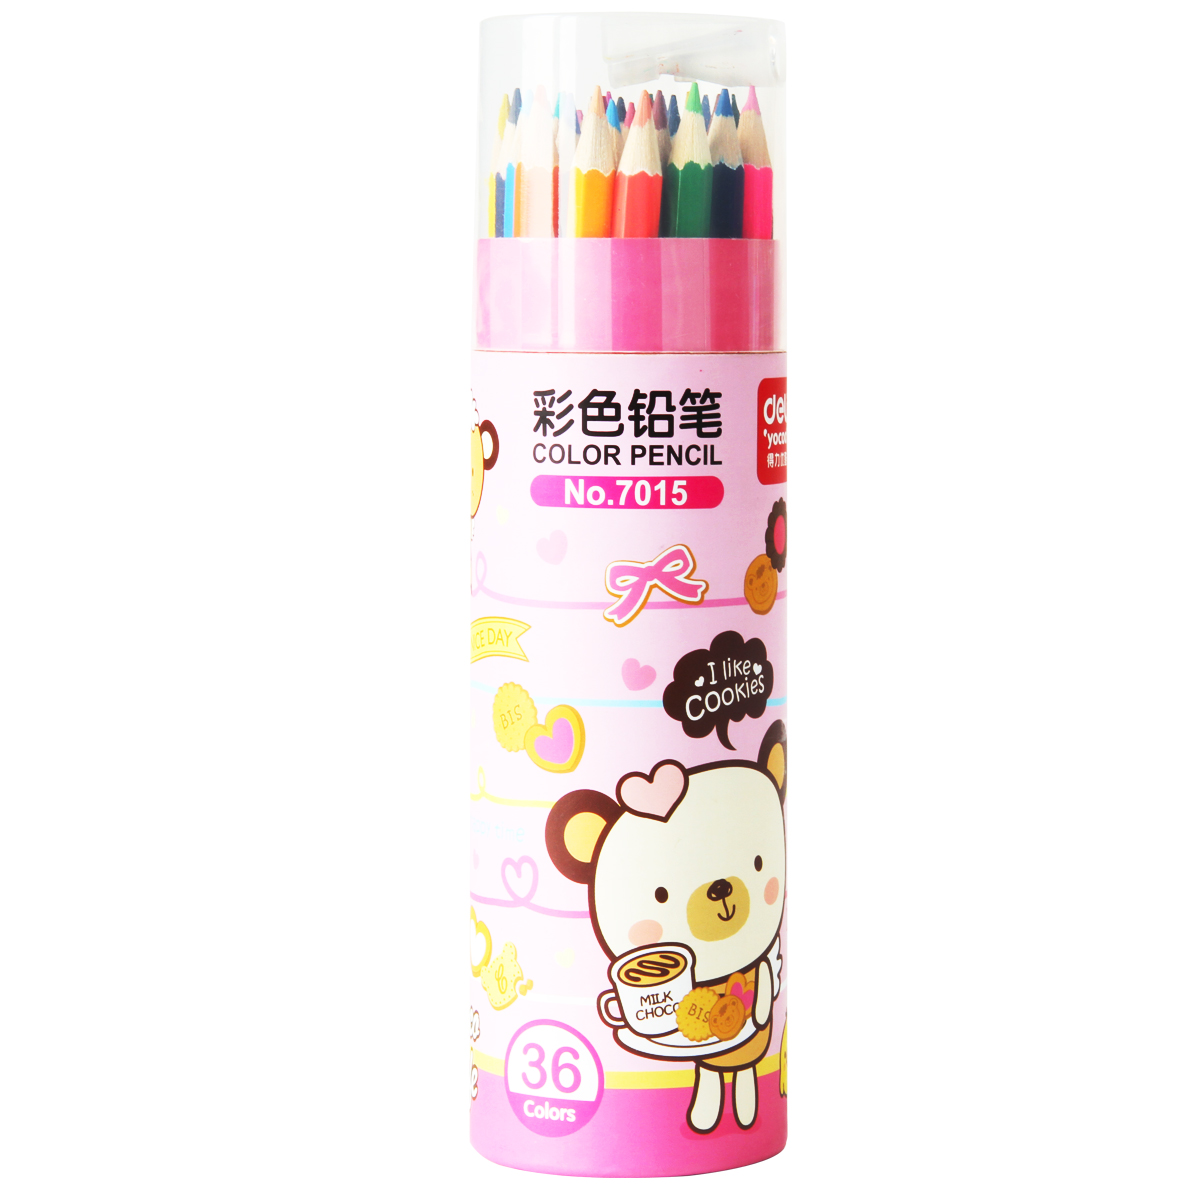 Deli 7015 color cartridges colored pencils colored pencils 36 color color cartoon student with a pencil sharpener